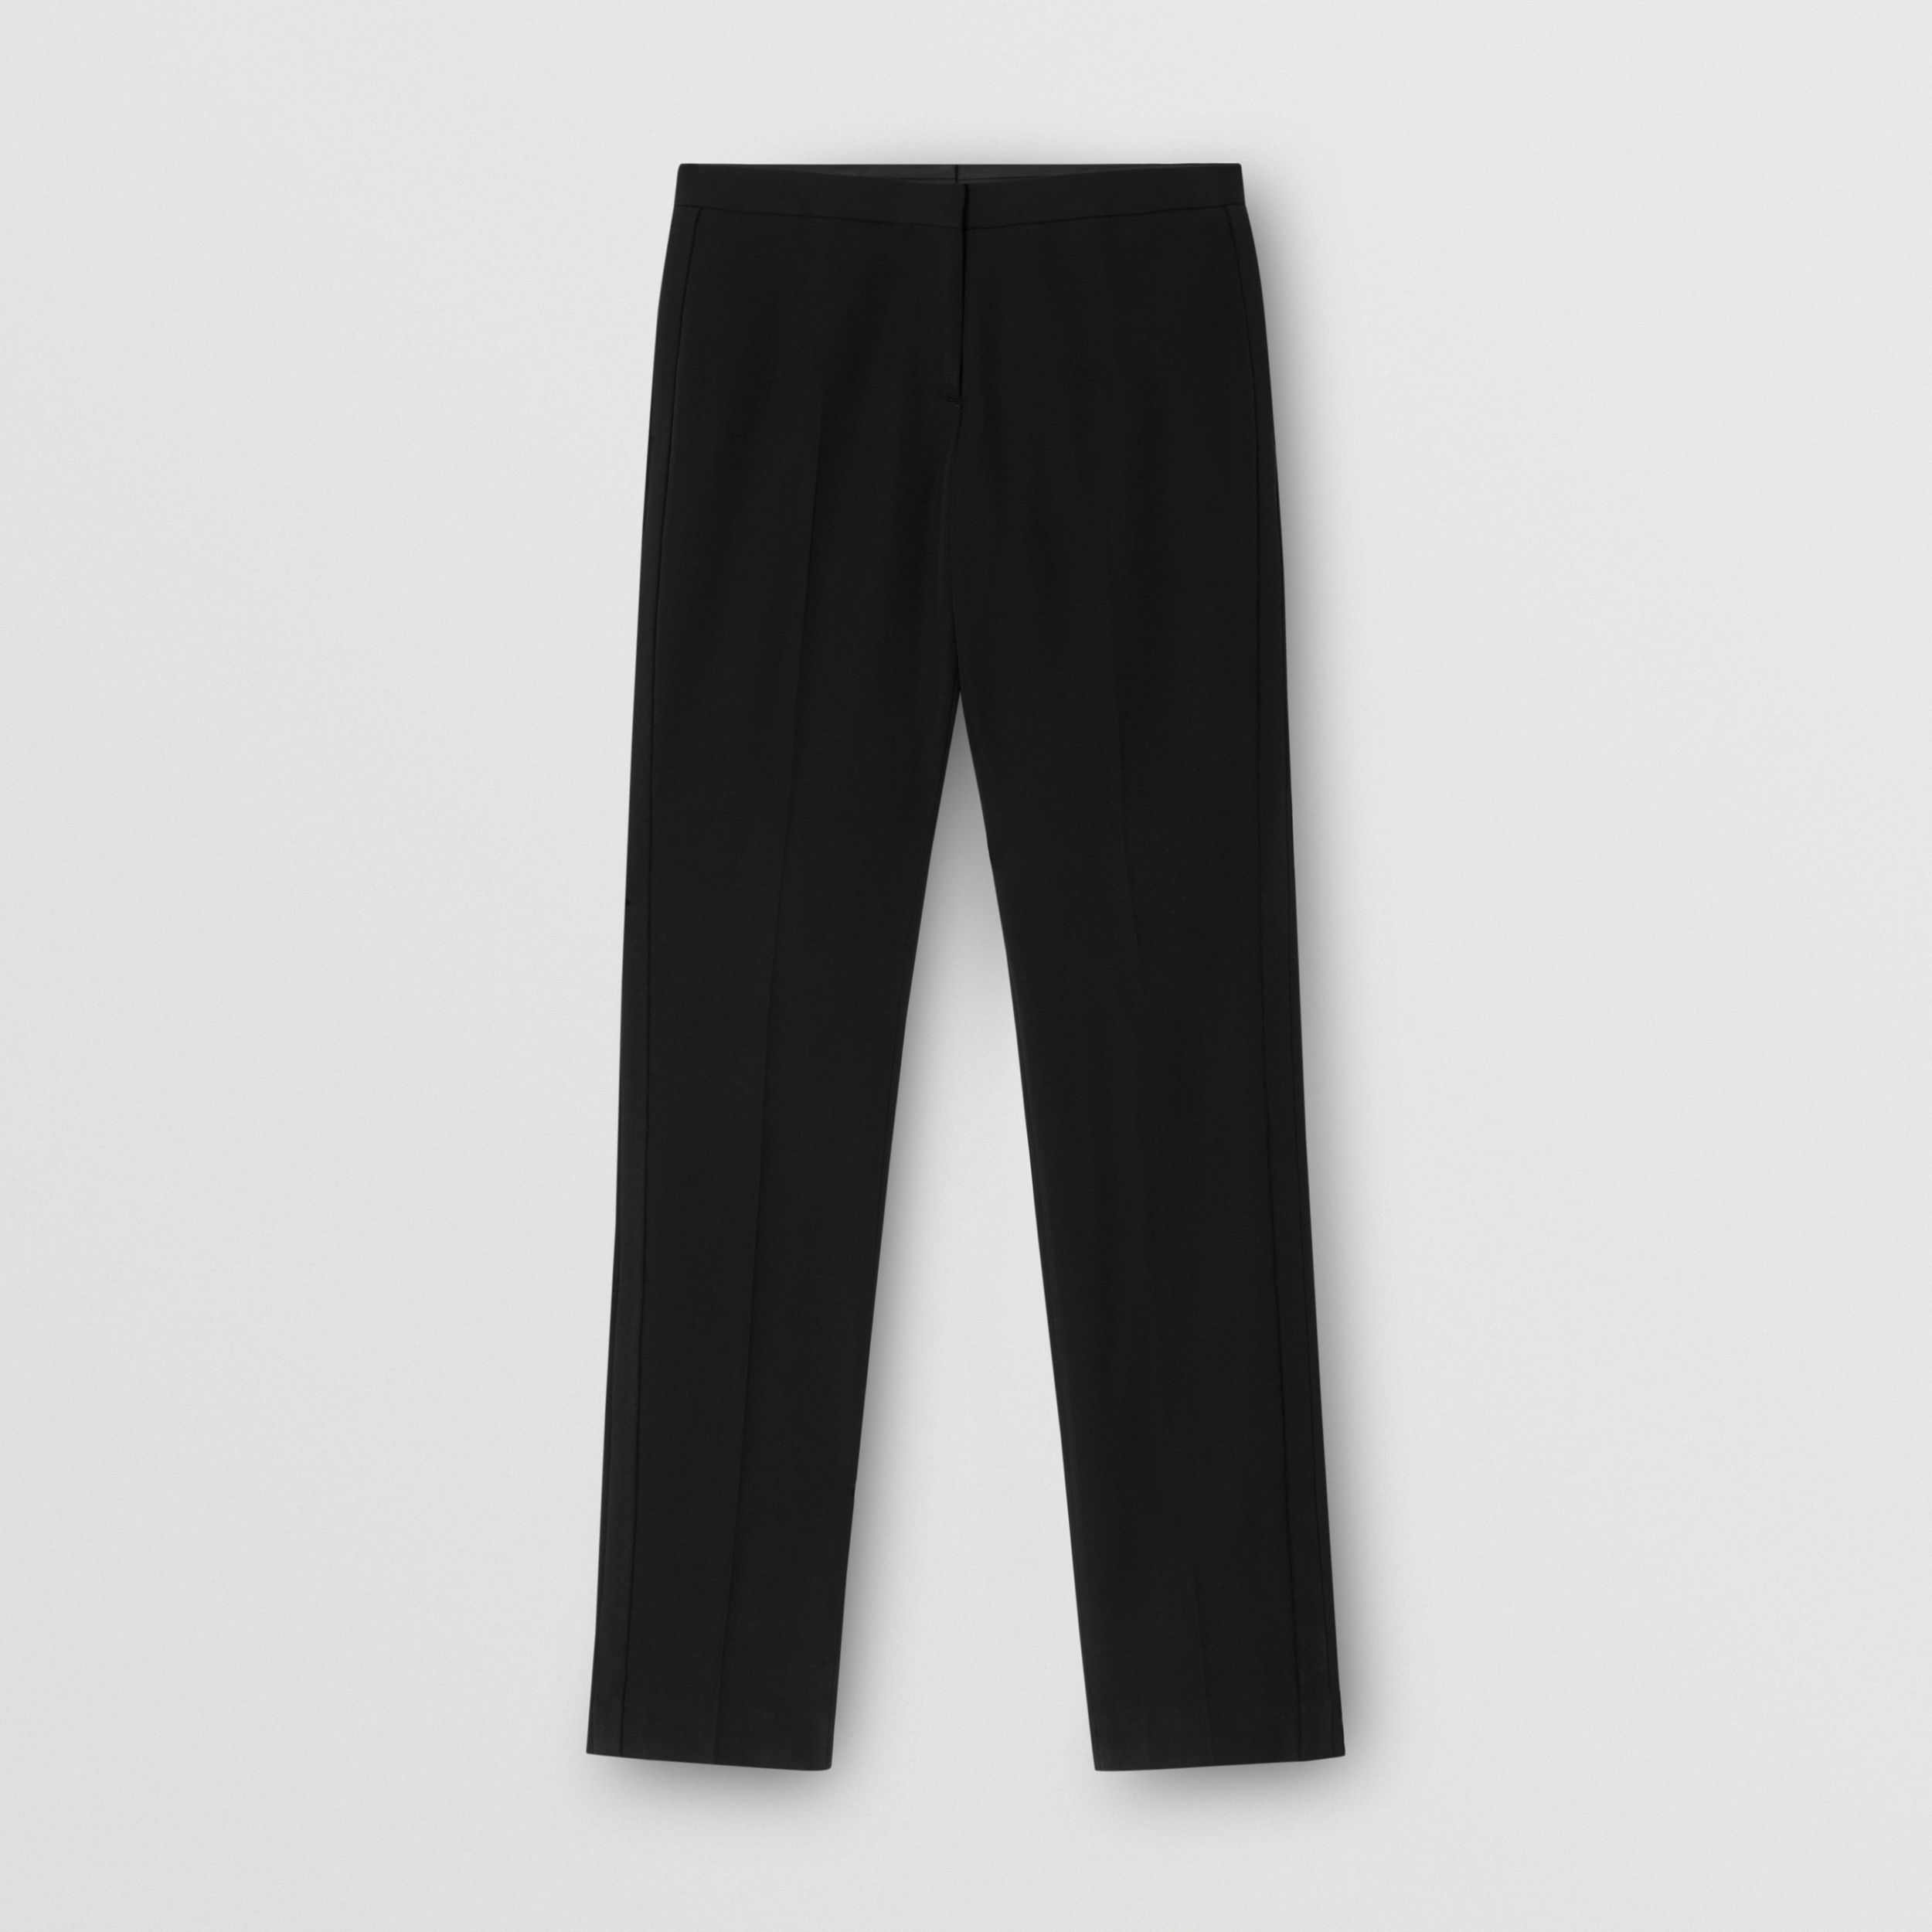 Silk Blend Side Stripe Wool Tailored Trousers in Black - Women | Burberry - 4